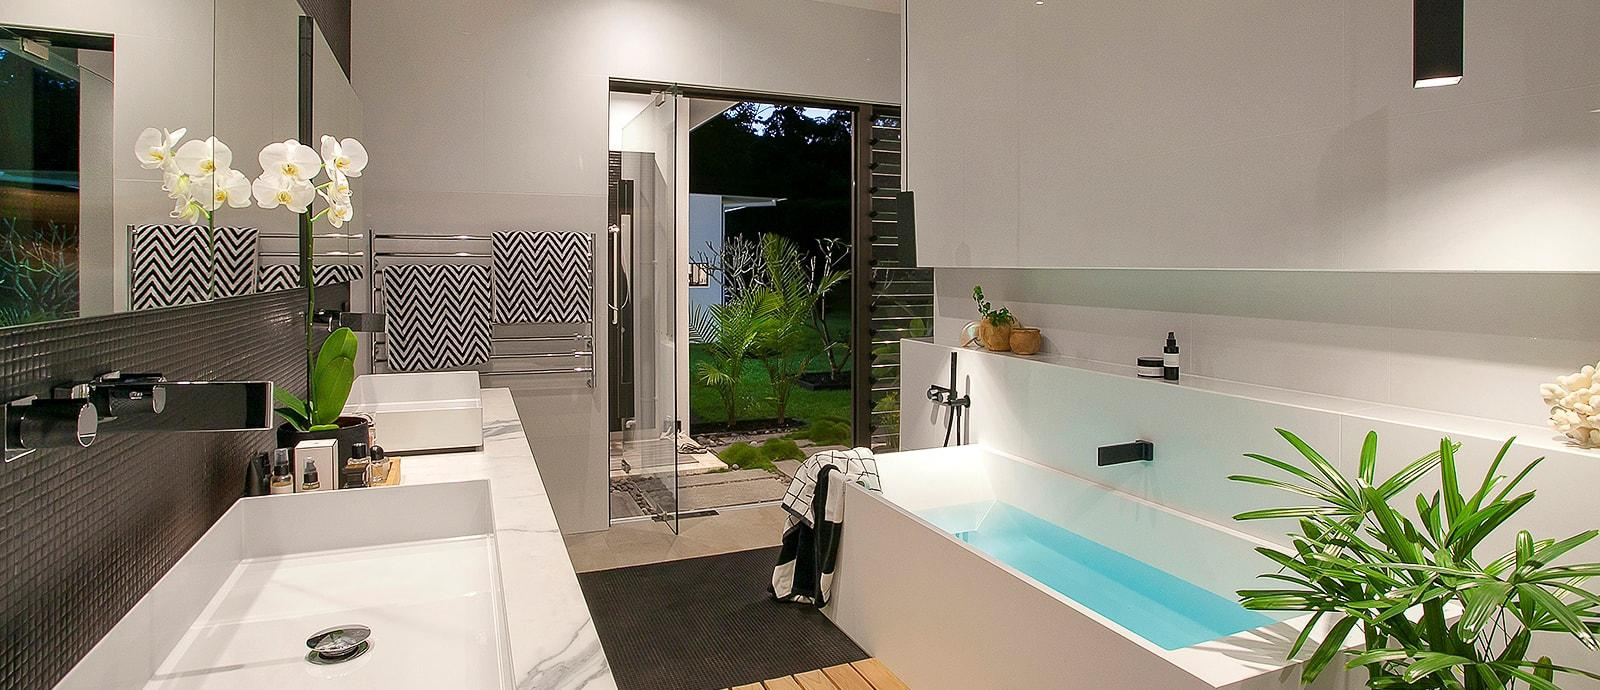 Sarah_Waller_Design_Hero_10_Doonan_Glasshouse_Bathroom_image_1600_1-min